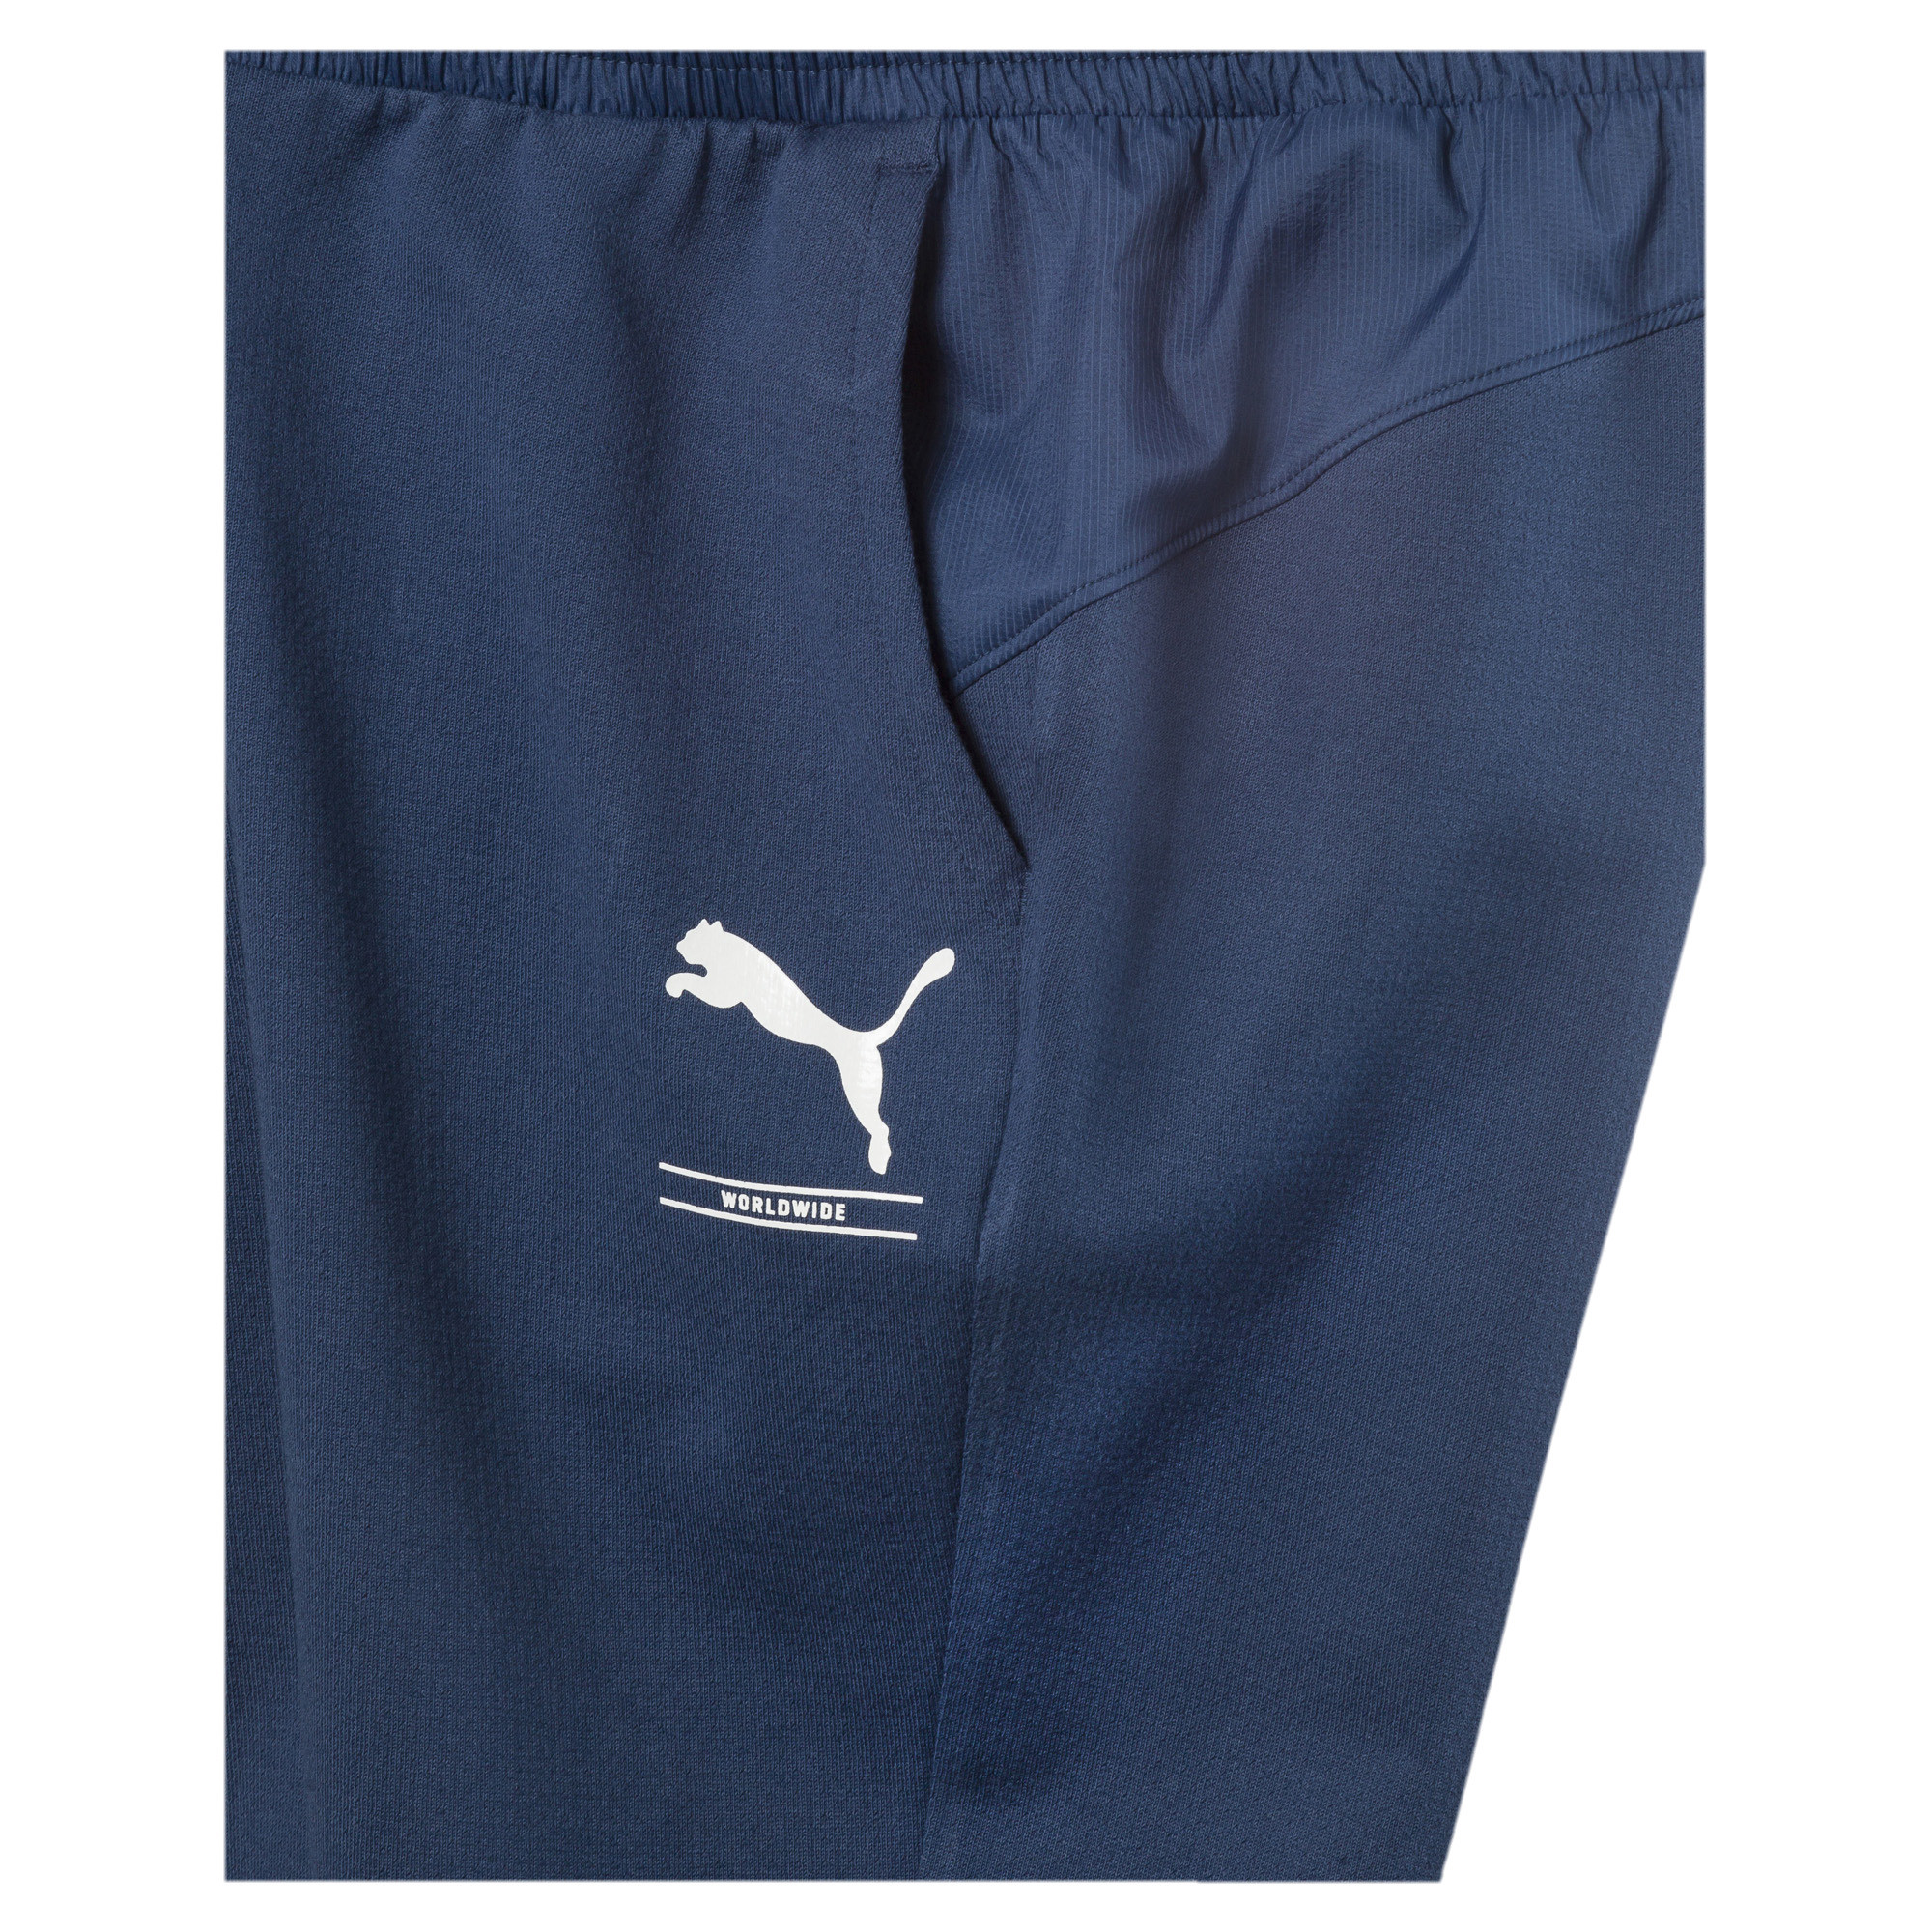 PUMA-Women-039-s-NU-TILITY-Sweatpants thumbnail 22